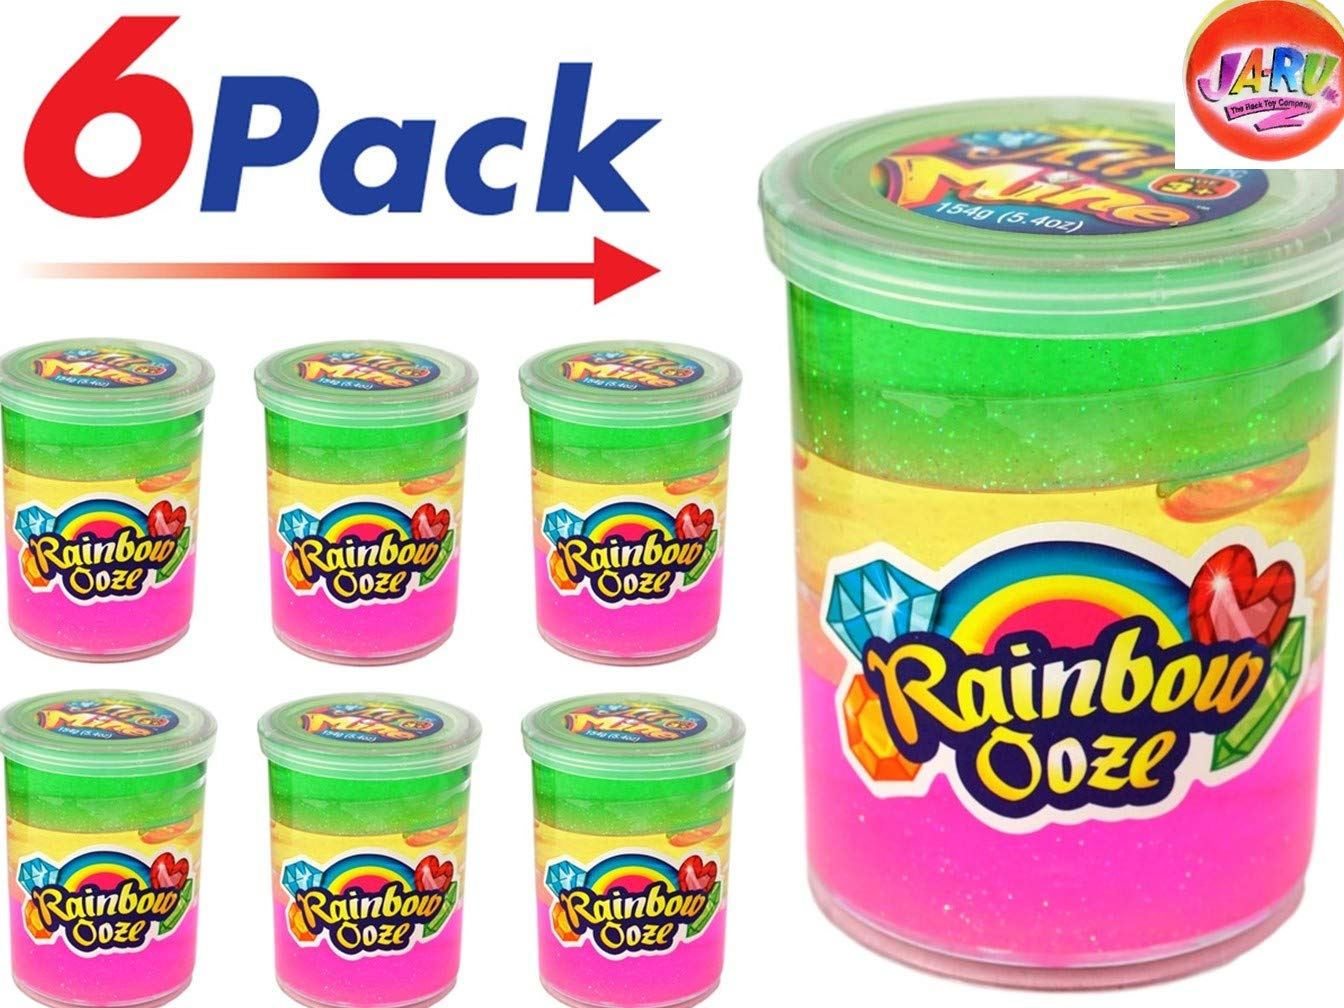 JA-RU Rainbow Putty Slime Kit Neon Glitter Colors (6 Units) Unicorn Party Girls Game. Slime Squishy and Stretchy. Arts and Crafts for Girls Party Favor Toy Supplies | Item #4634-6p